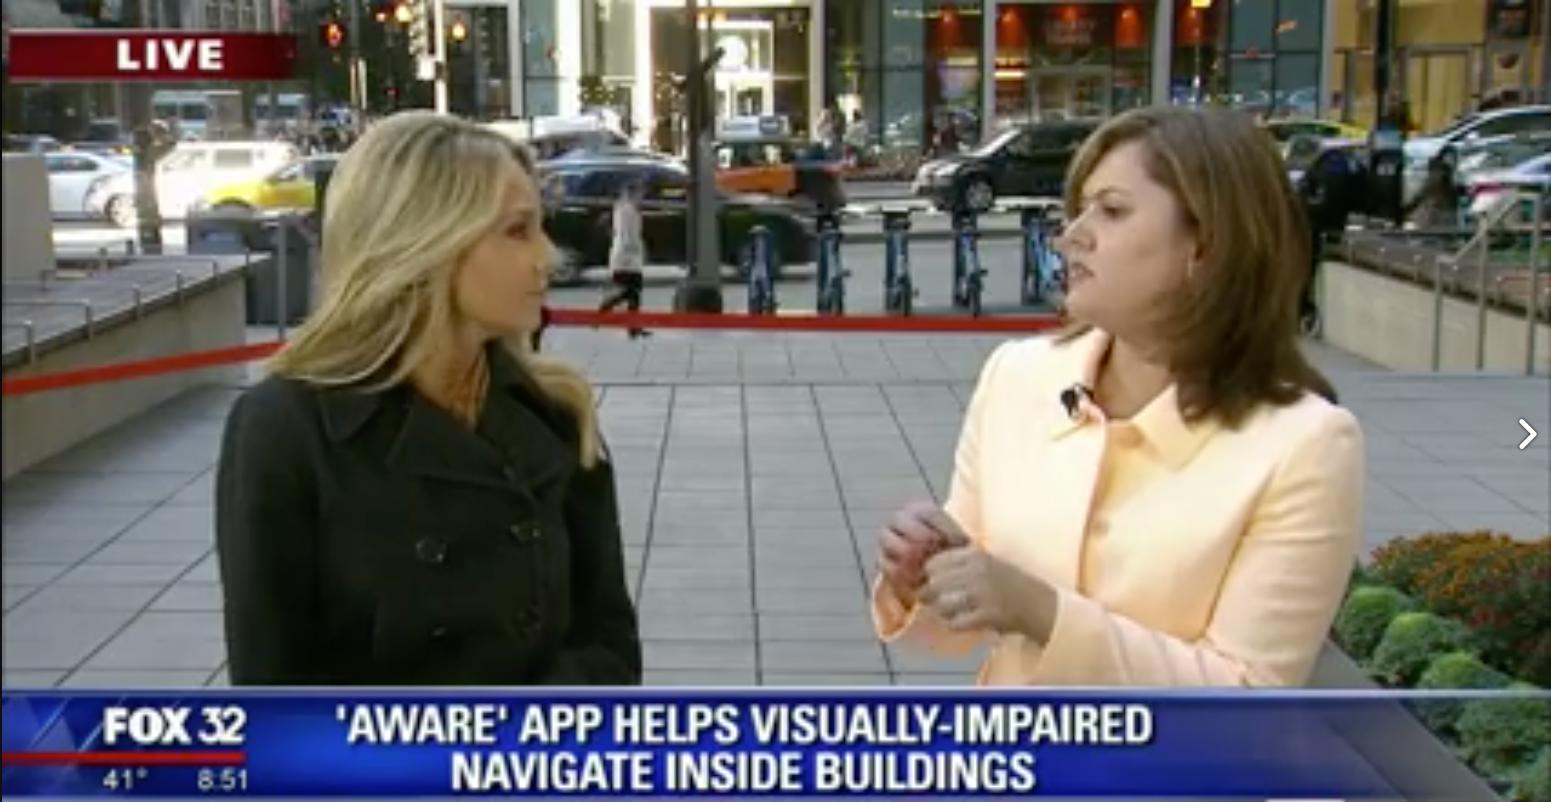 Natalie Bomke and Sensible Innovations founder and creator of the Aware app live at Fox 32 in Chicago.